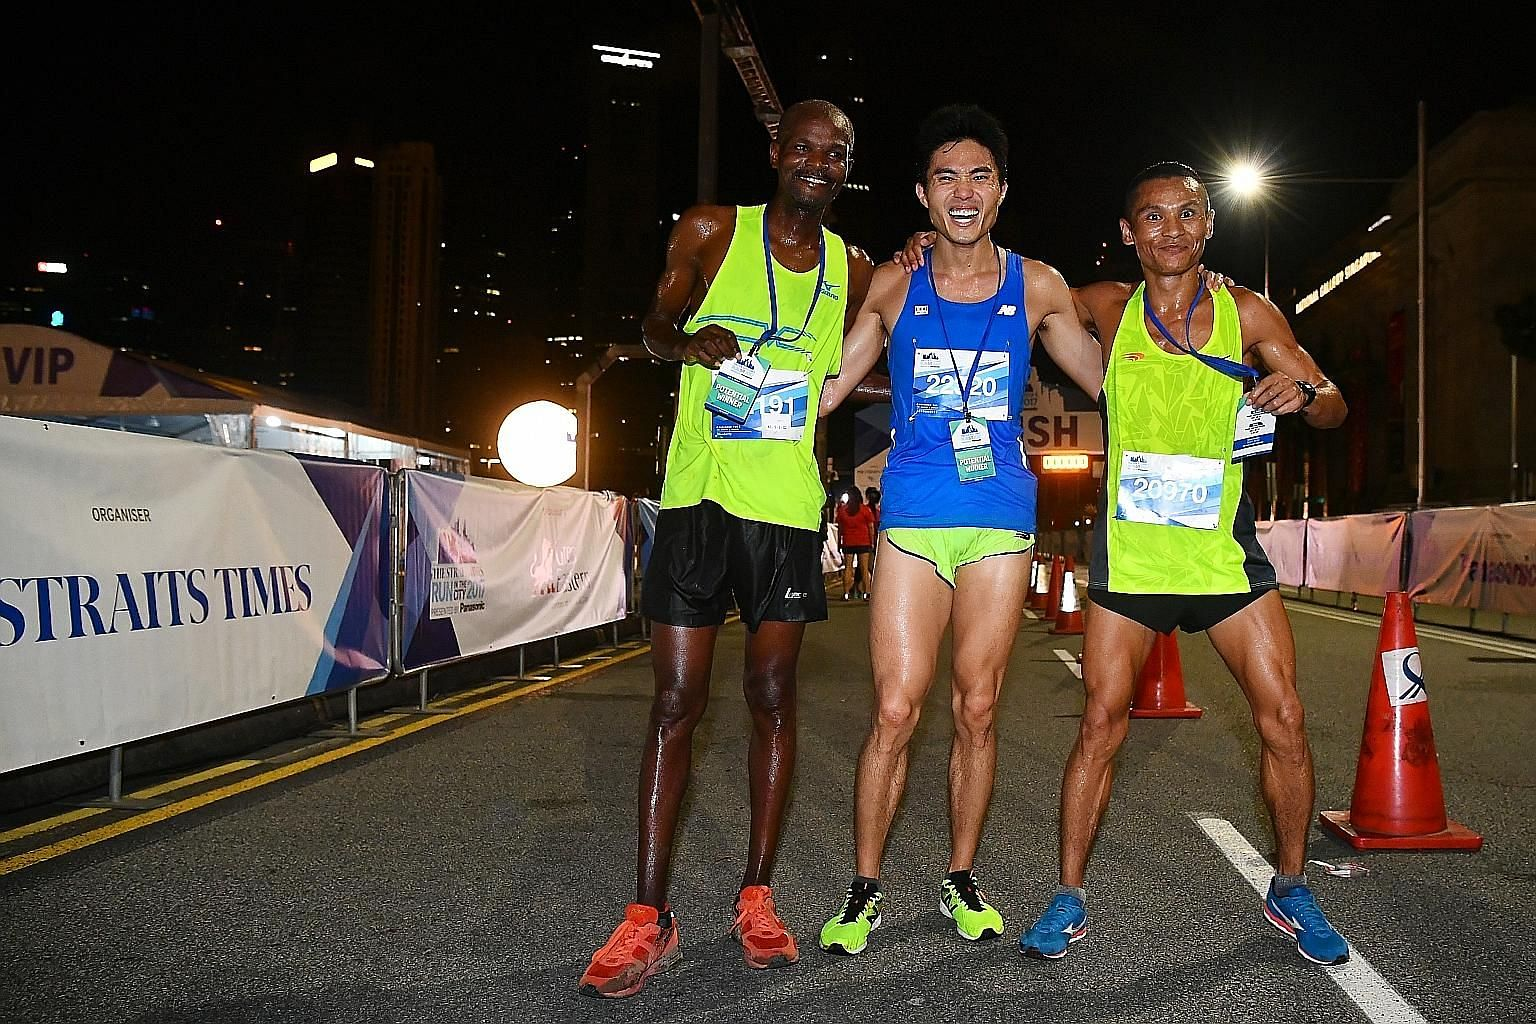 The top three male runners in the ST Run's signature 18.45km race are (from left) Kenyan James Karanga, the winner; Singaporean Mok Ying Ren, who took third place; and Nepali Nimesh Gurung, who was second.